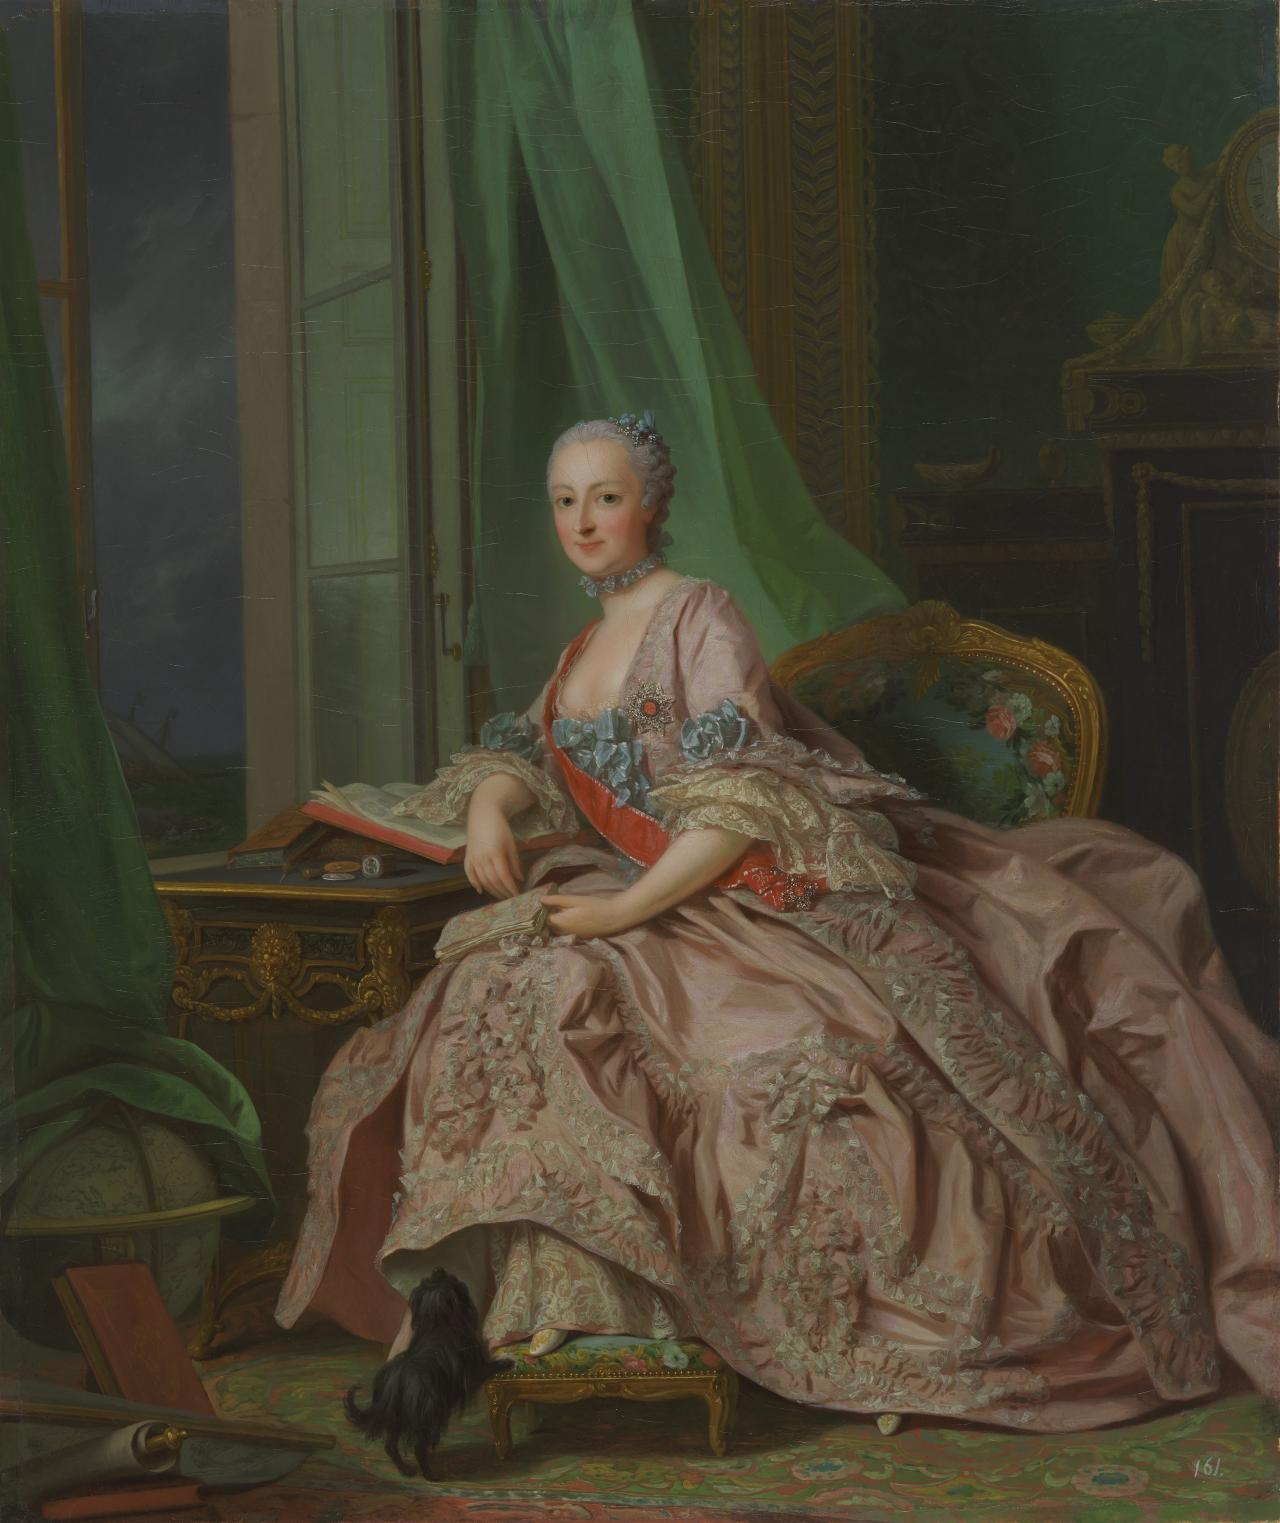 Anastasia Ivanovna, Countess of Hesse-Homburg, Princess Trubetskaya